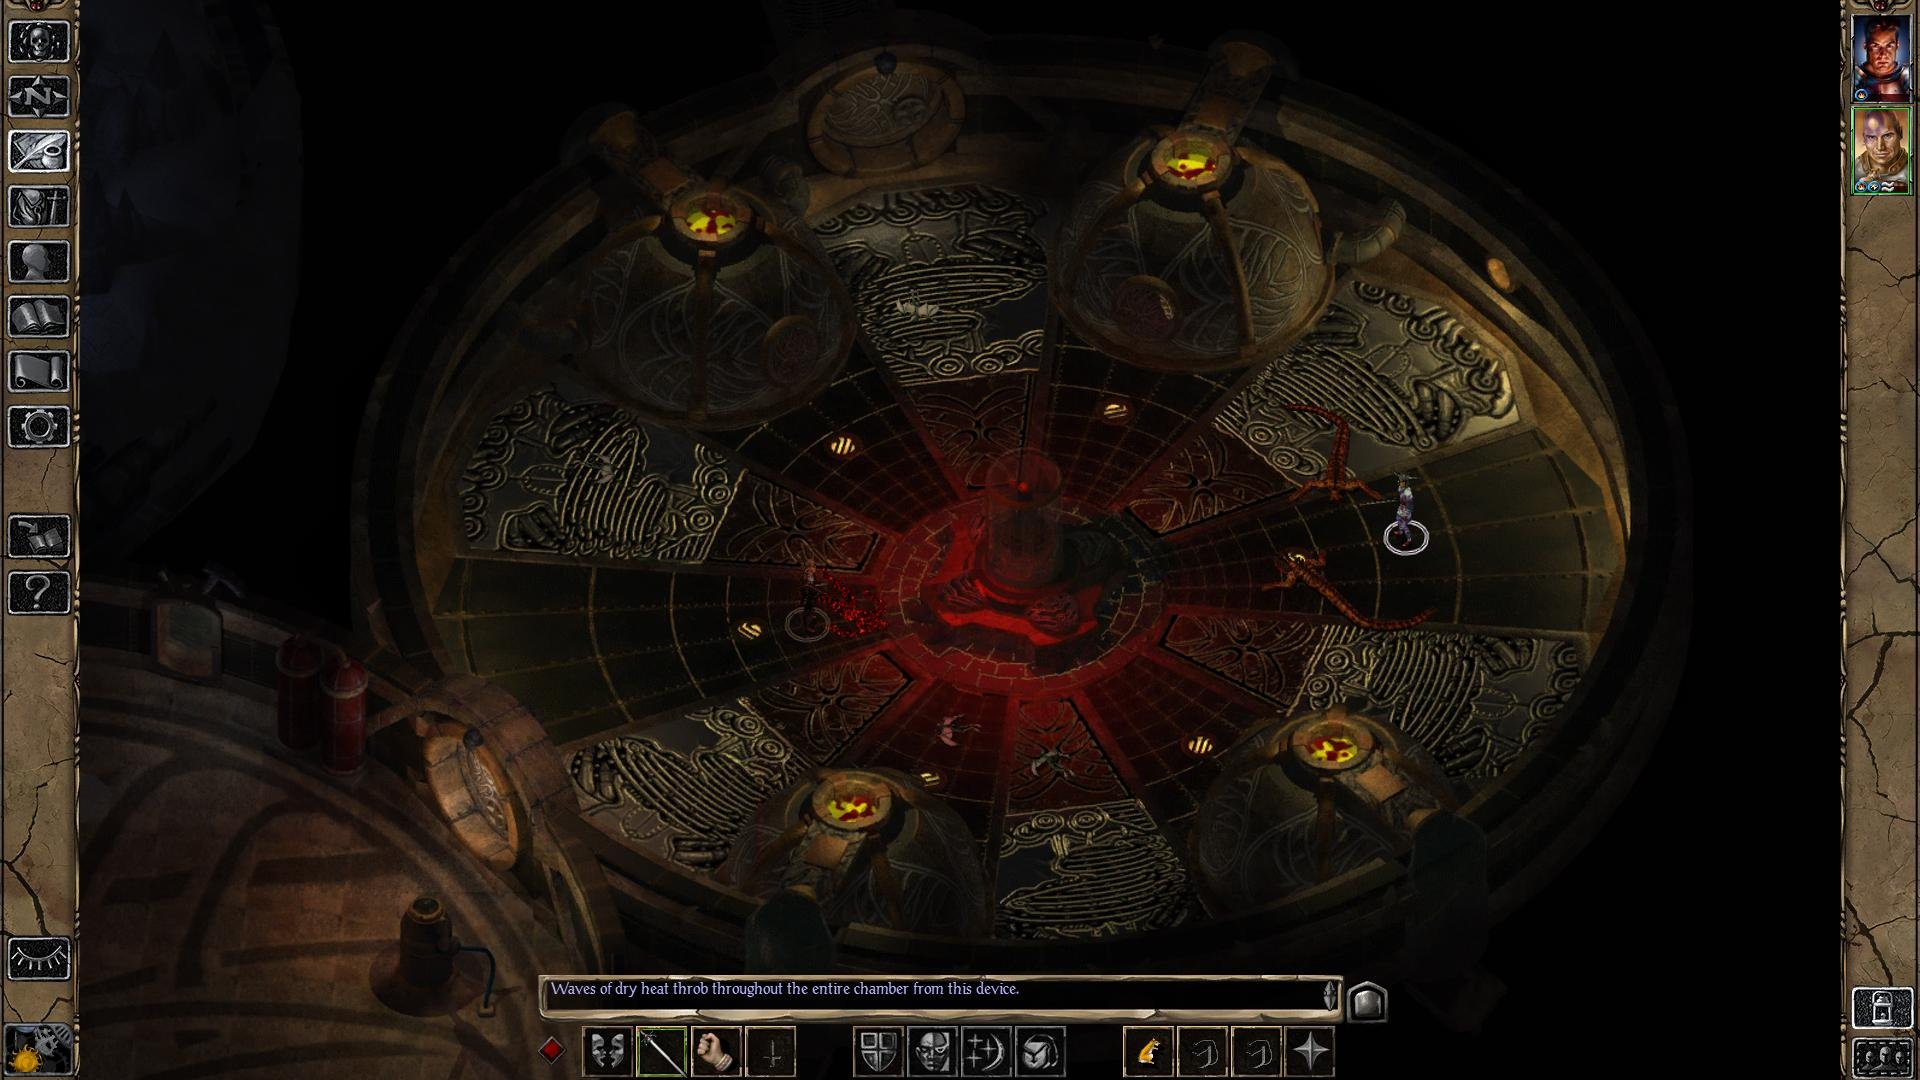 Baldur's Gate 2: Enhanced Edition has finally rolled a critical hit and popped up on the App Store for iPad